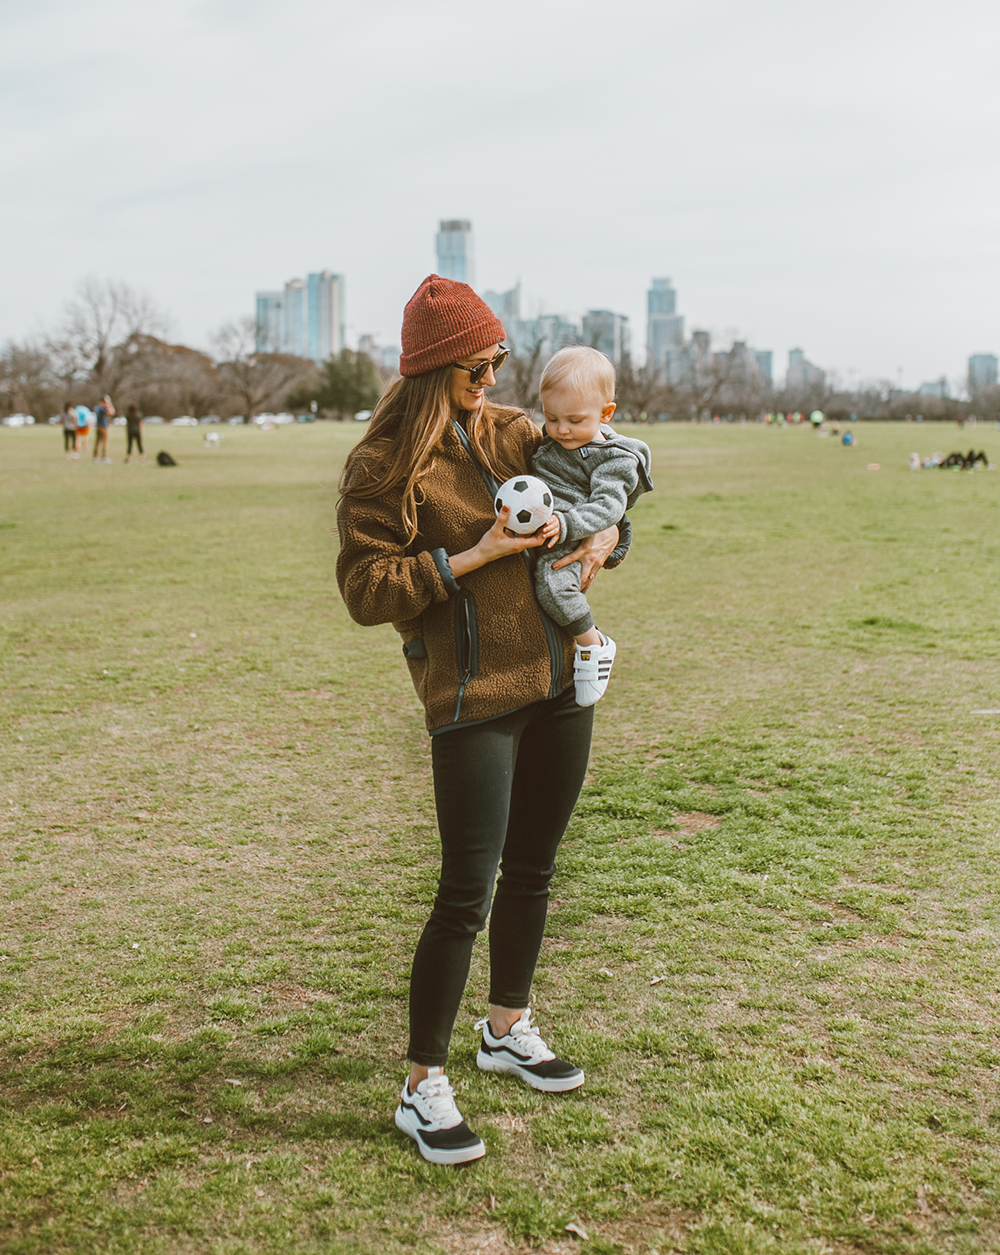 livvyland-blog-olivia-watson-austin-texas-lifestyle-fashion-blogger-zilker-park-vans-ultrarange-rapidweld-sneakers-patagonia-divided-sky-jacket-1